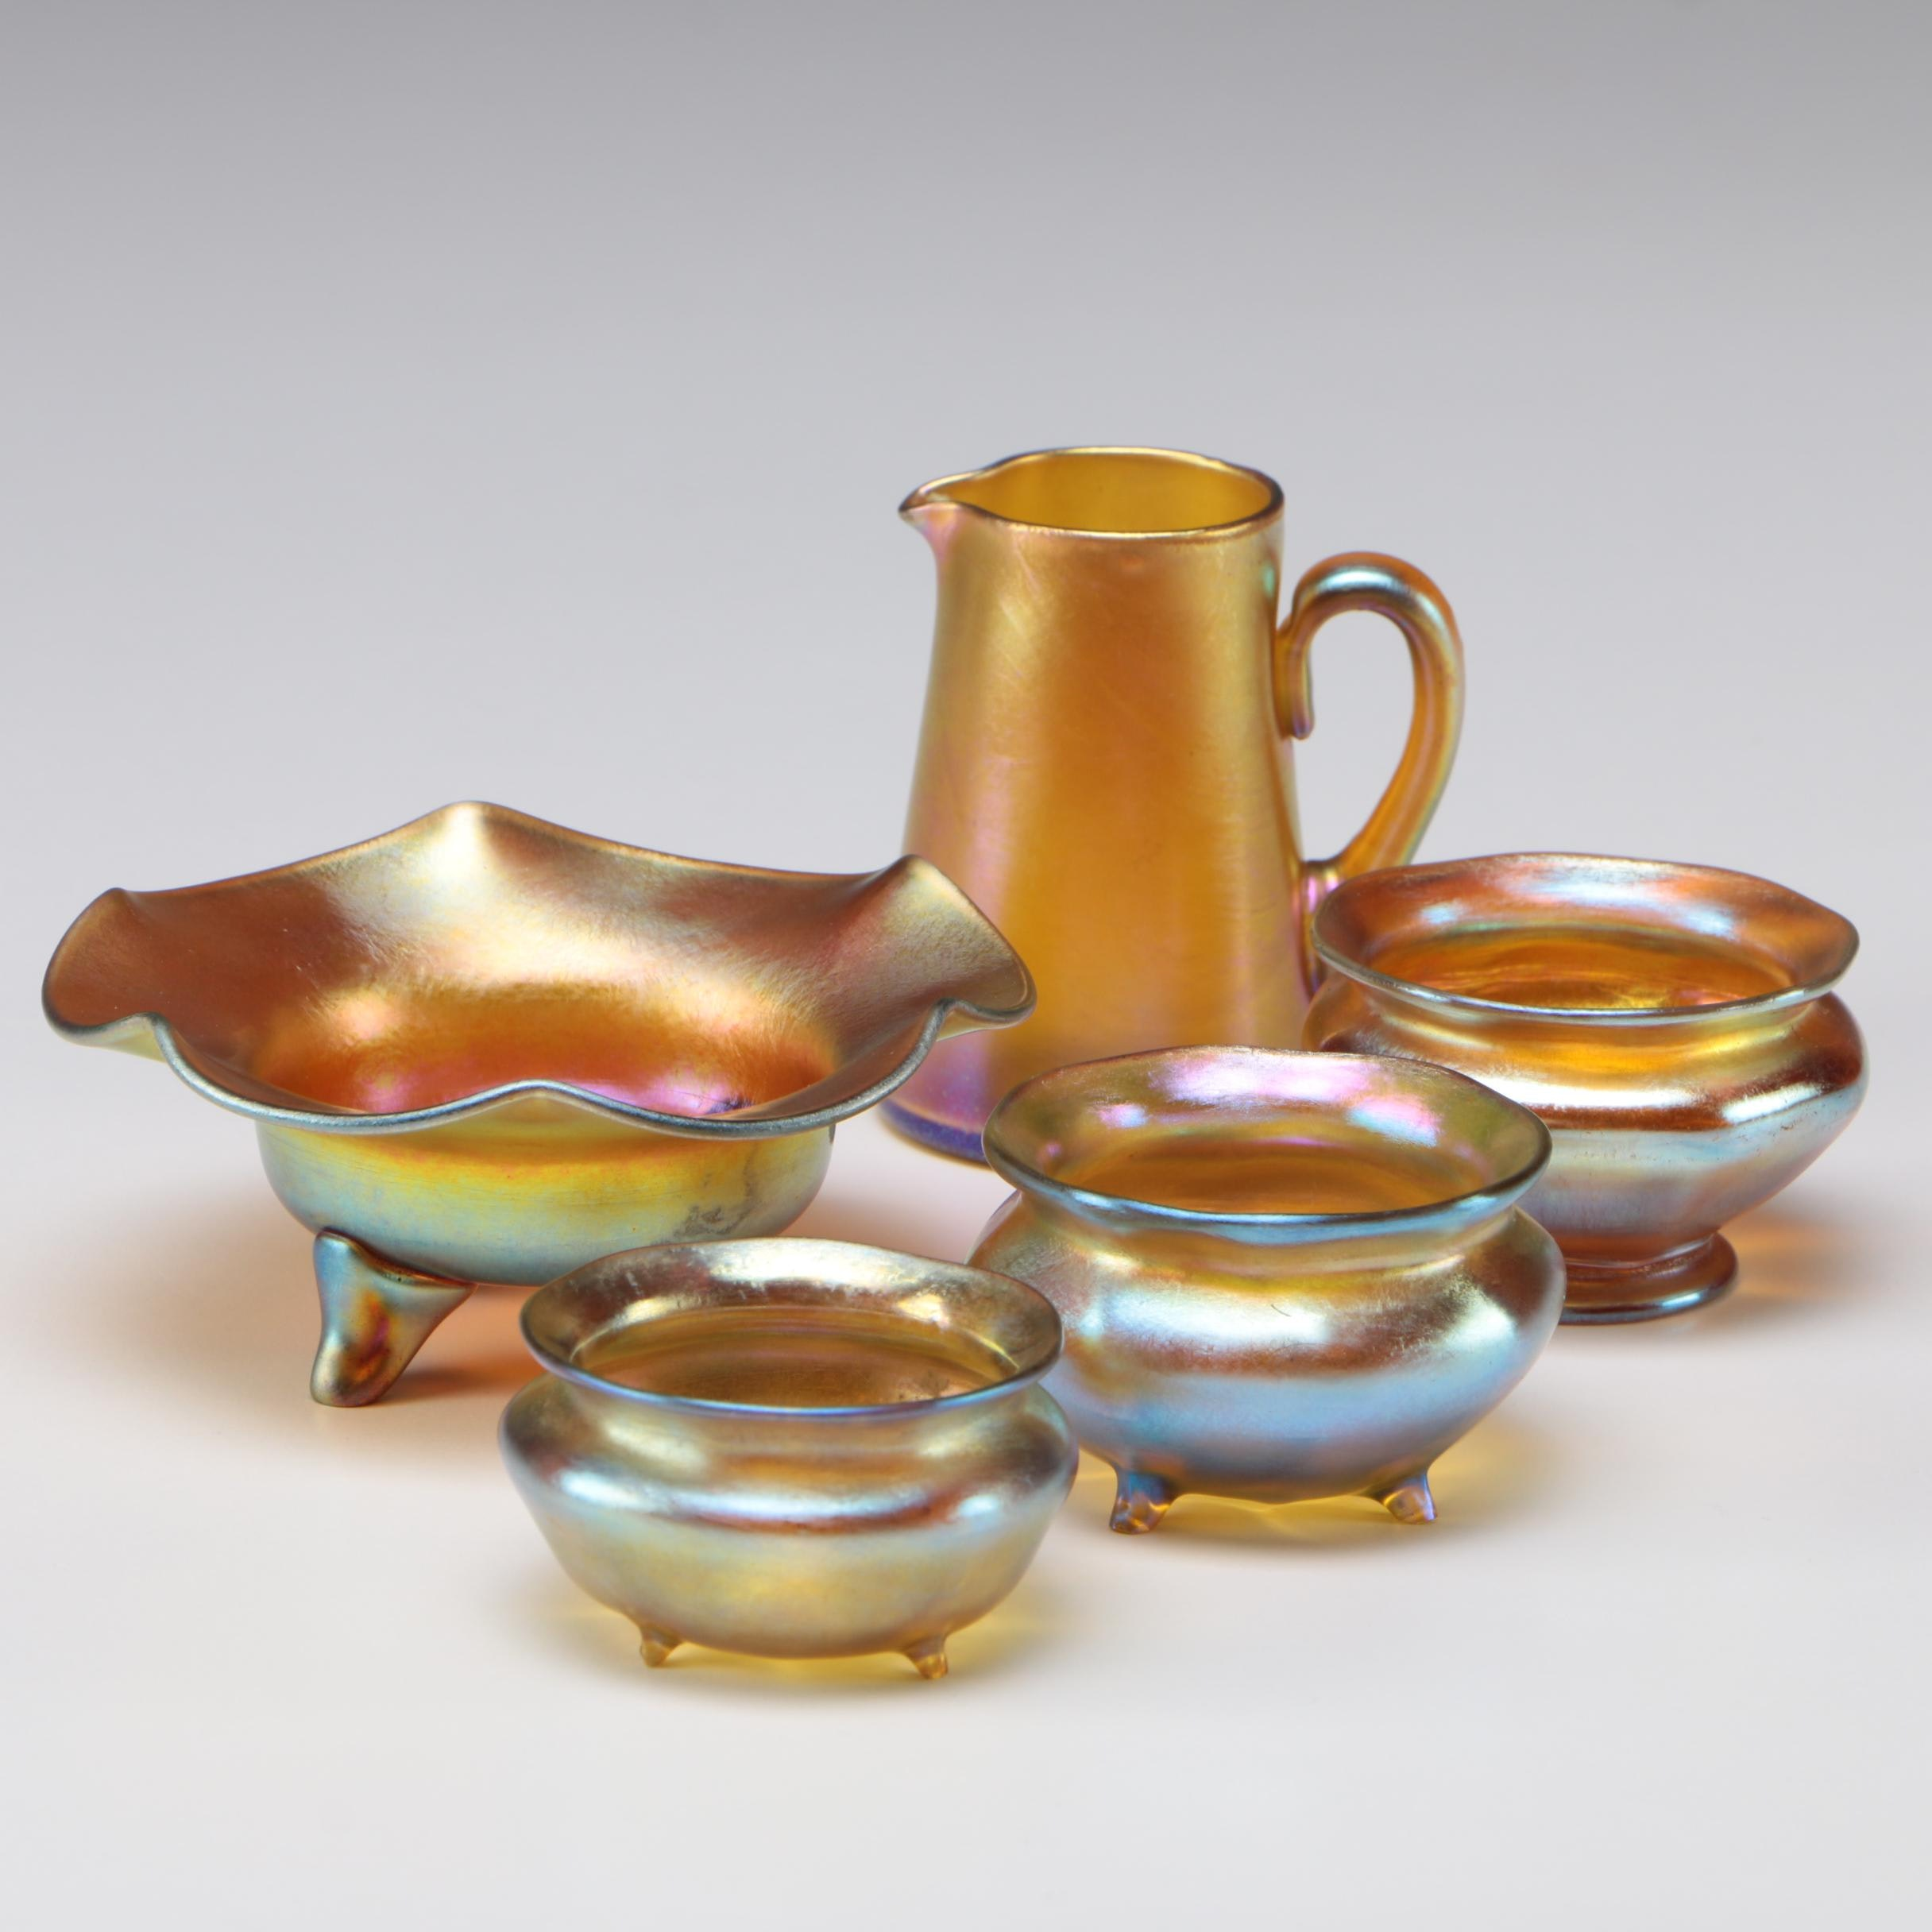 Louis Comfort Tiffany Favrile Art Glass Master Salts and Creamers, 1890s - 1900s